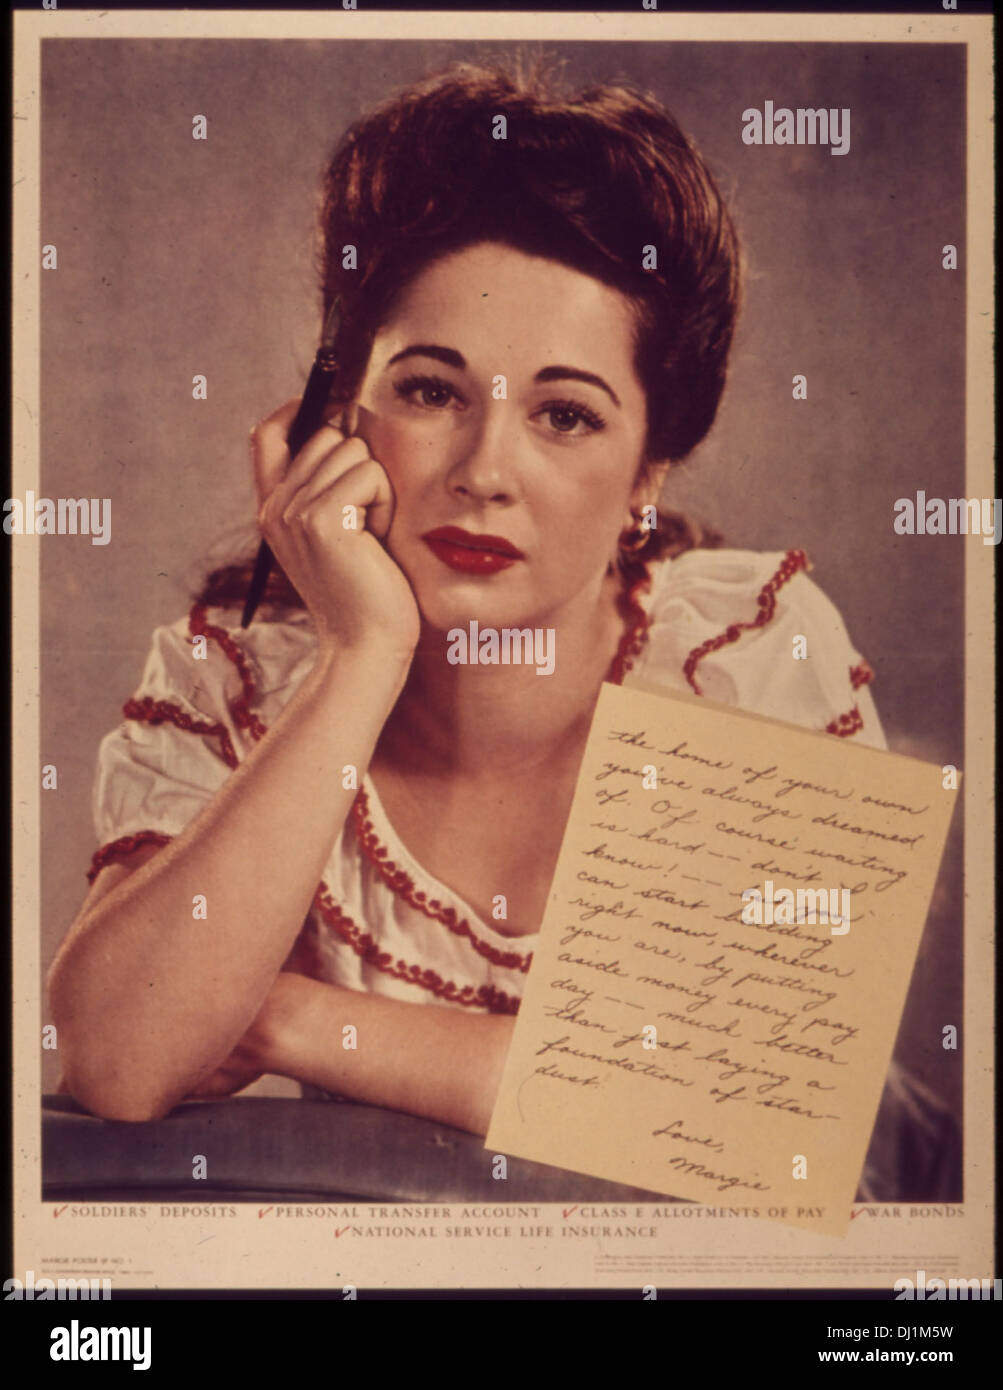 Margie poster no. 1 - Letters to soldiers concerning soldiers' deposits, Personal transfer account, Class E... 987 - Stock Image